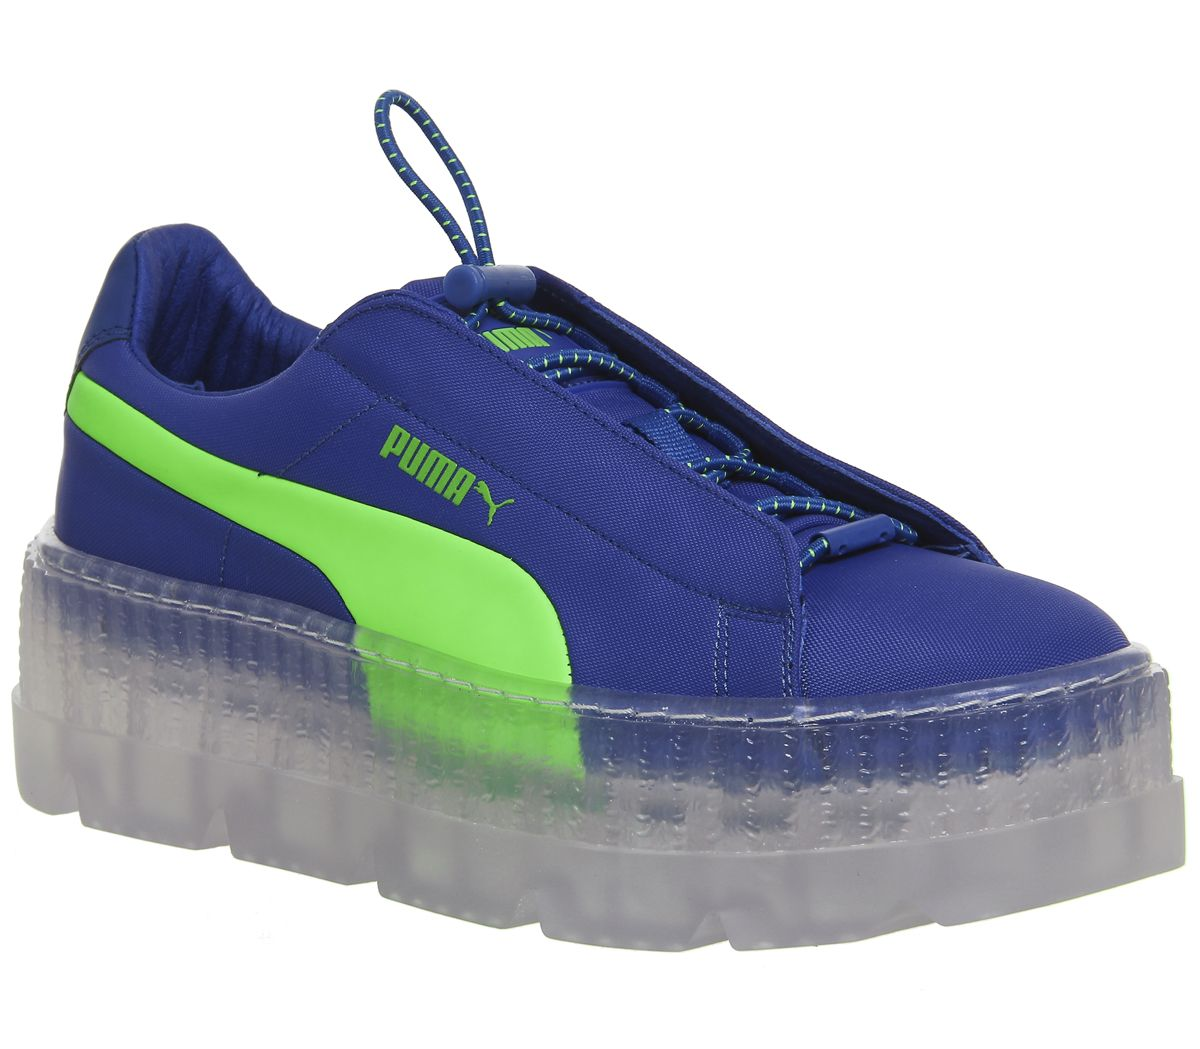 buy online a14e5 87c58 Fenty Cleated Creepers